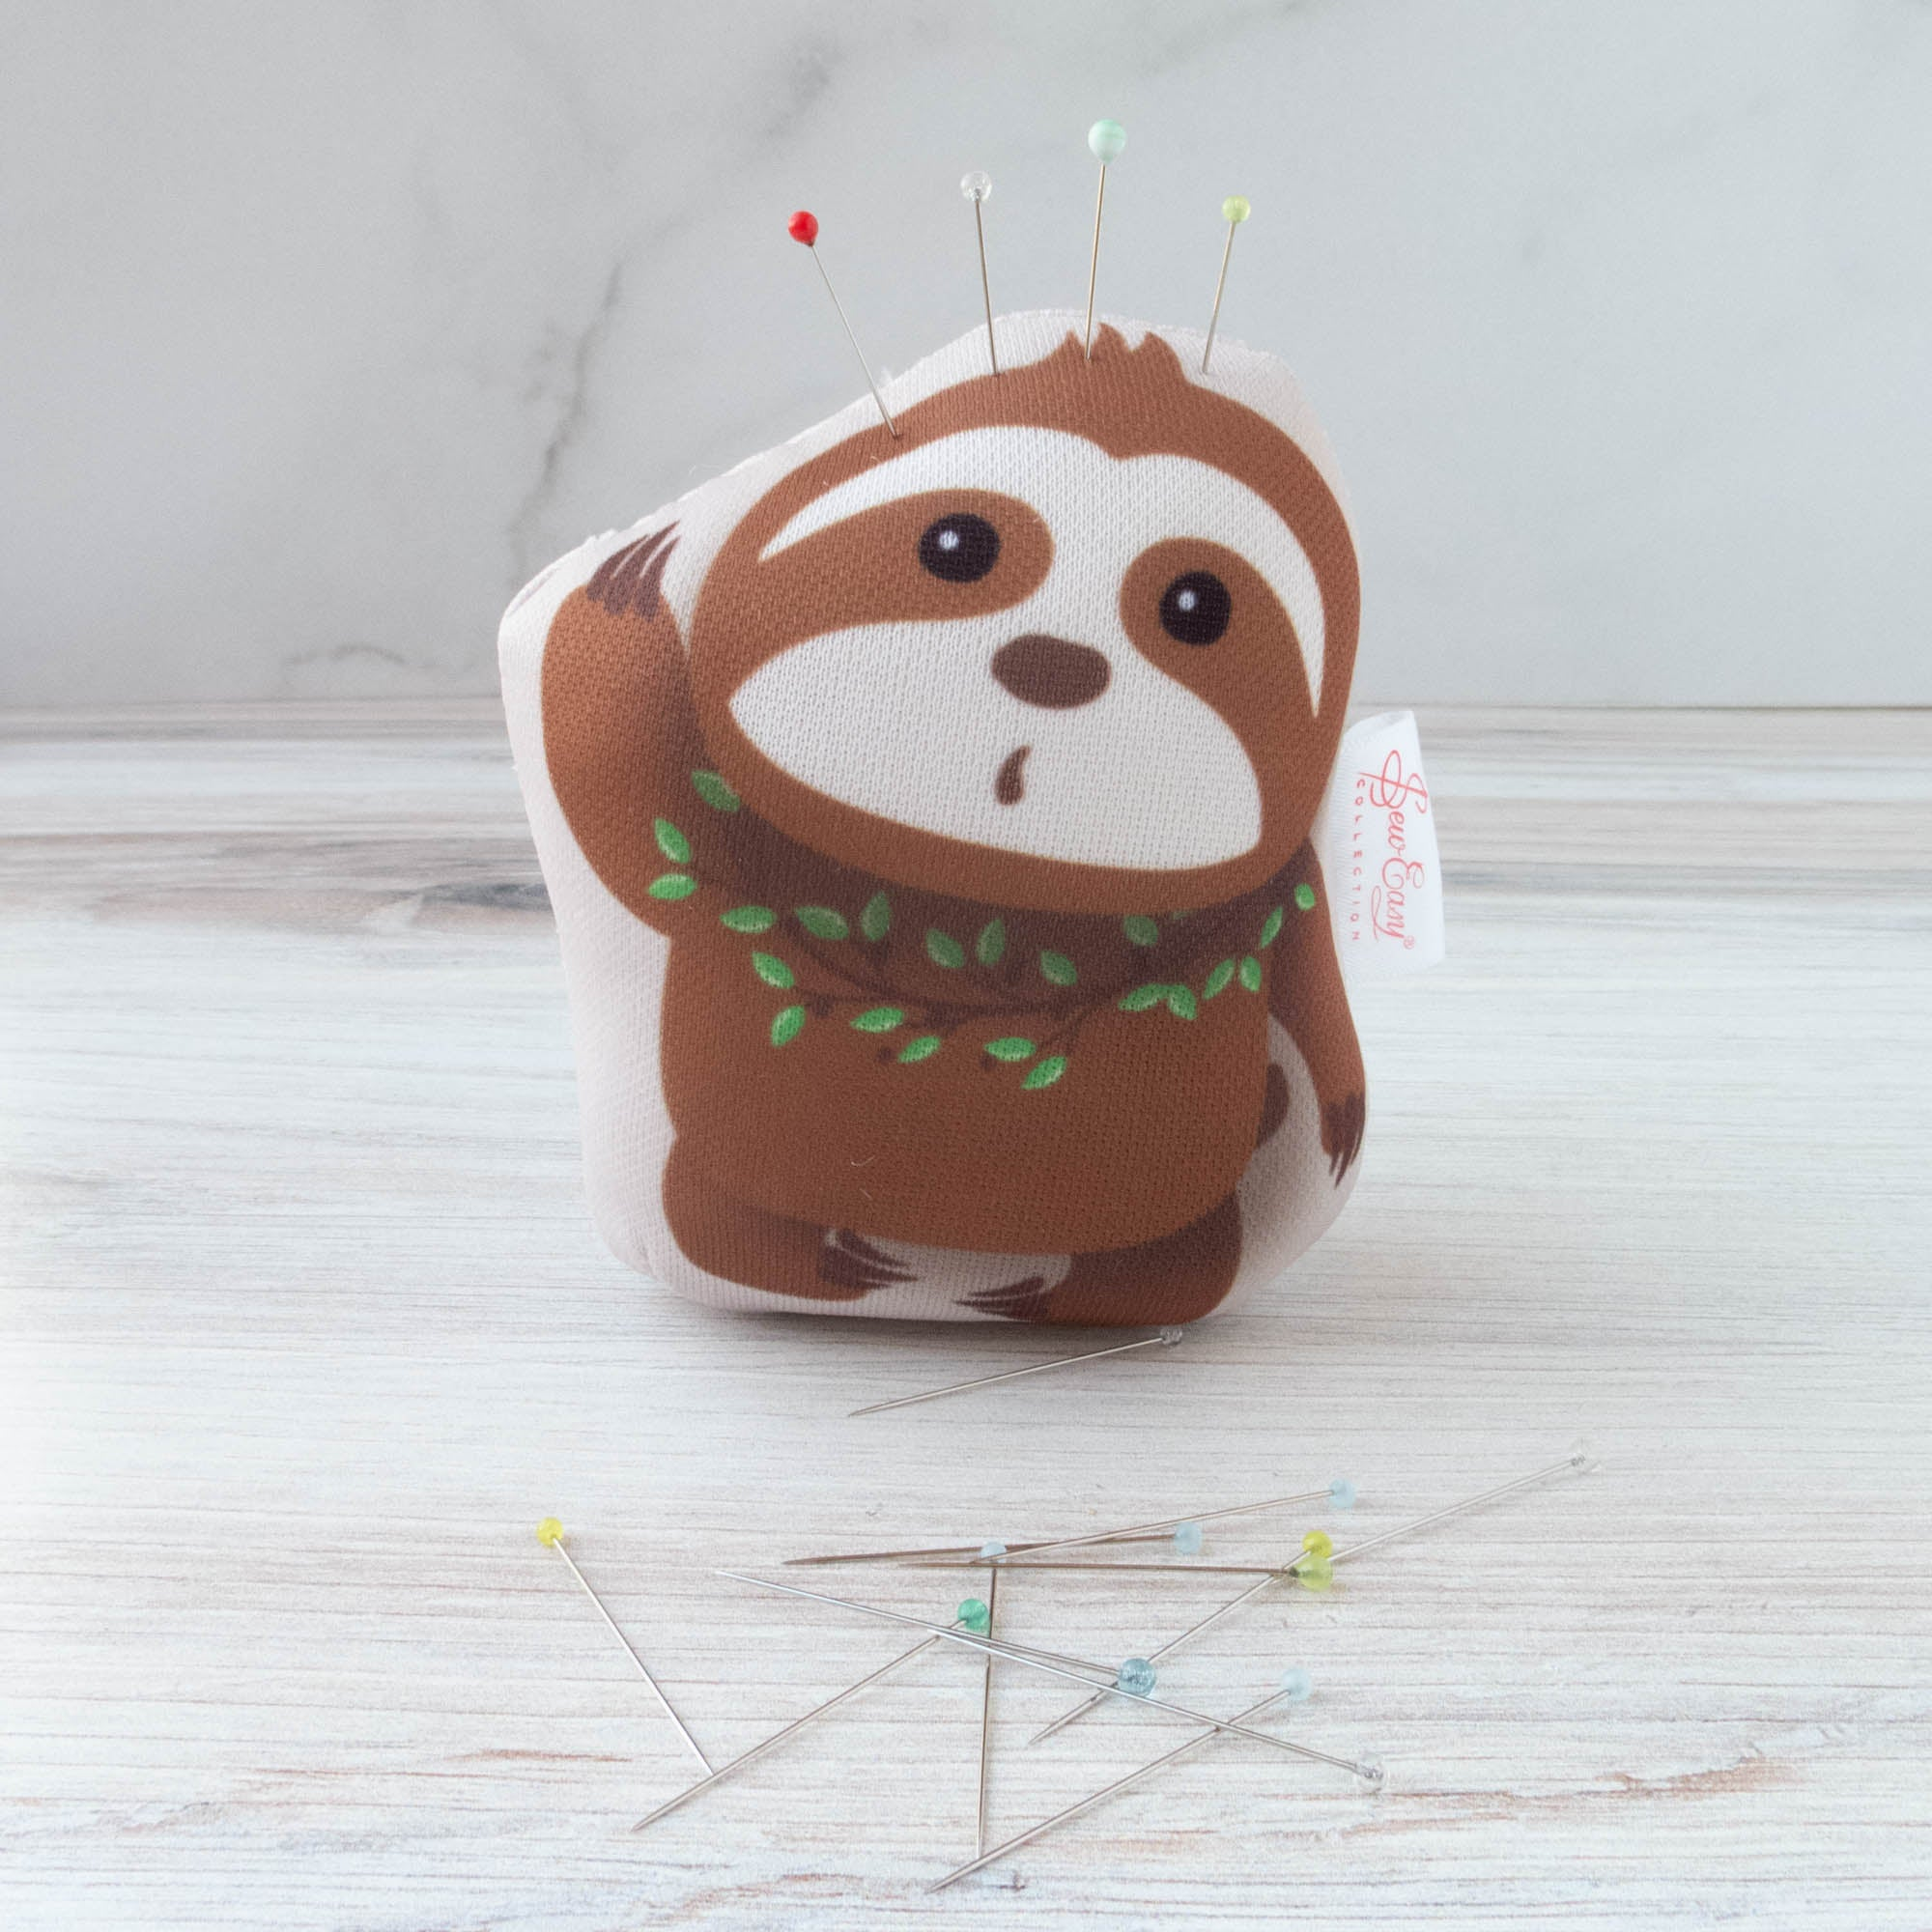 Gift for Sloth Fan Sloth Pincushion Sewing Gift Felt Pincushion Sloth Sloth Felt Pincushion Gifts for Friends Pin Cushion